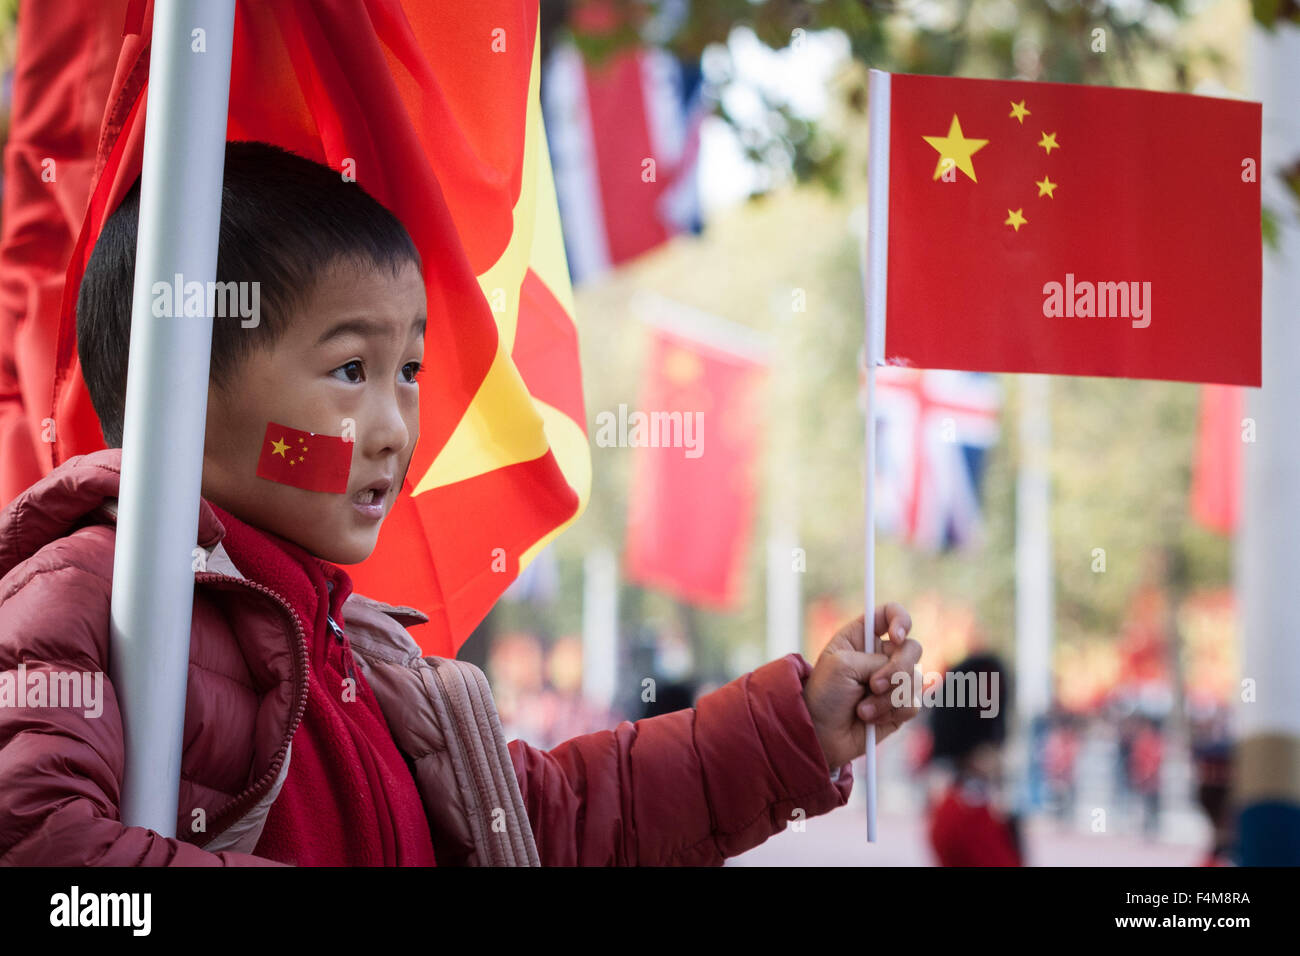 London, UK. 20th October, 2015. Chinese supporters wait for President Xi Jinping as part of the Queen's Royal welcoming - Stock Image